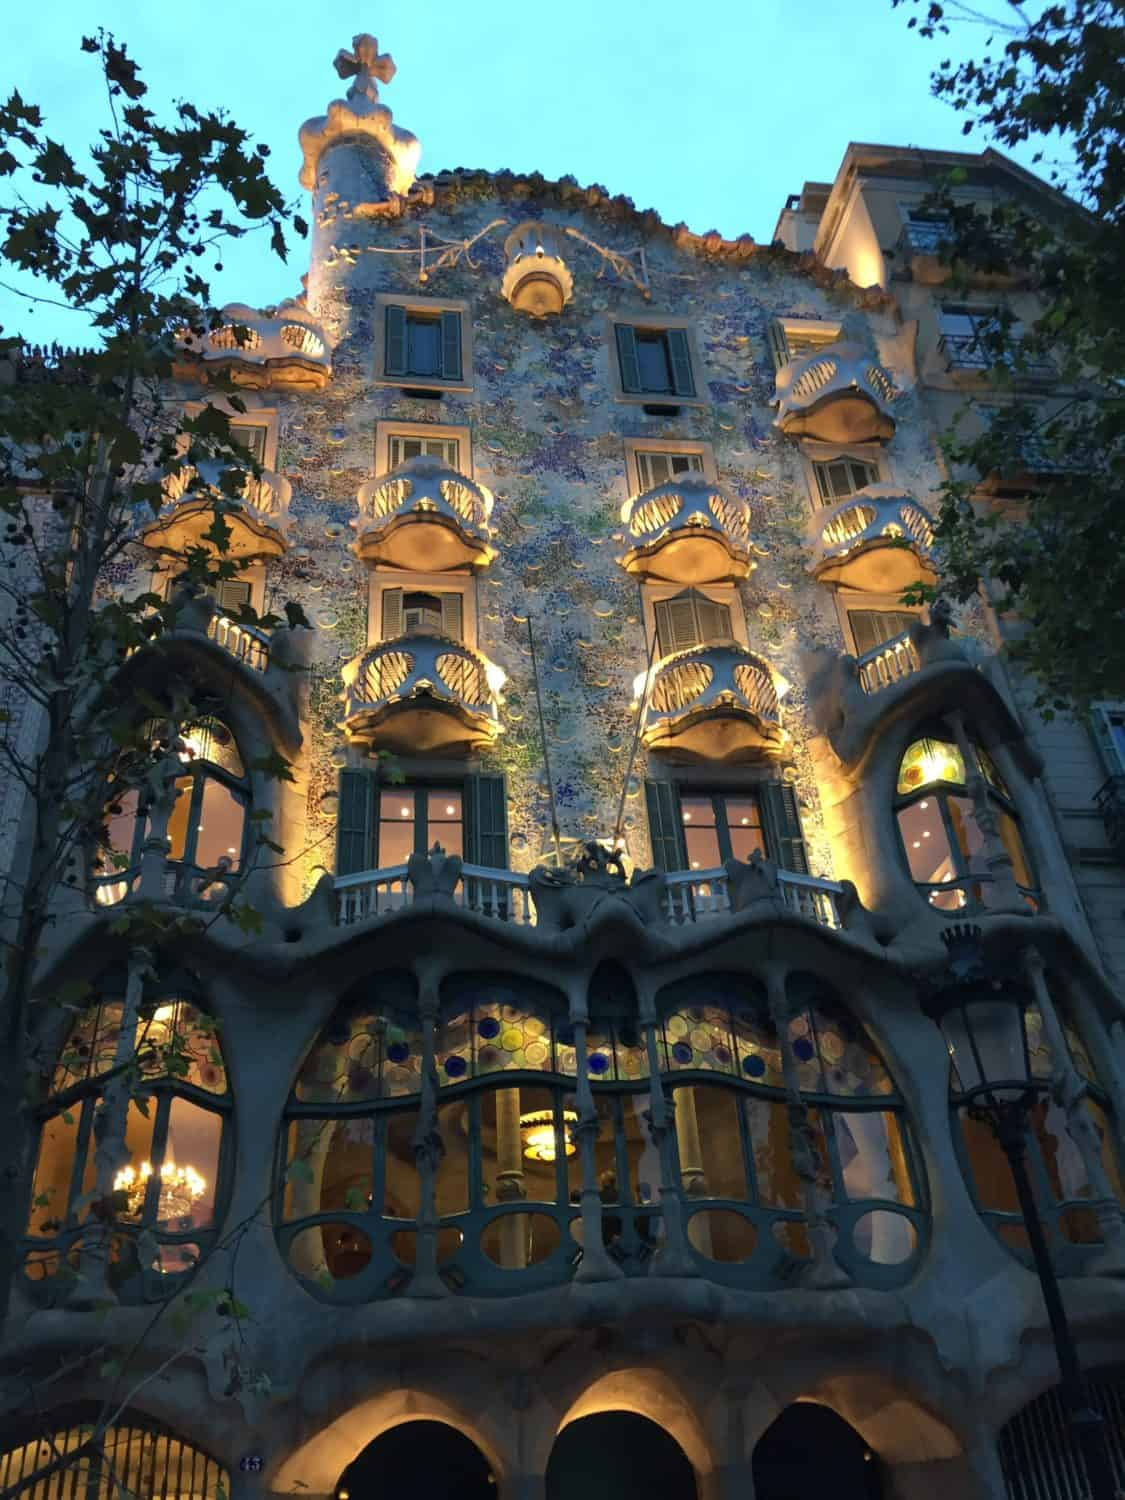 2 days in rainy Barcelona...Casa Batllo at night is beautiful despite the rain. What to do in Barcelona if it rains.